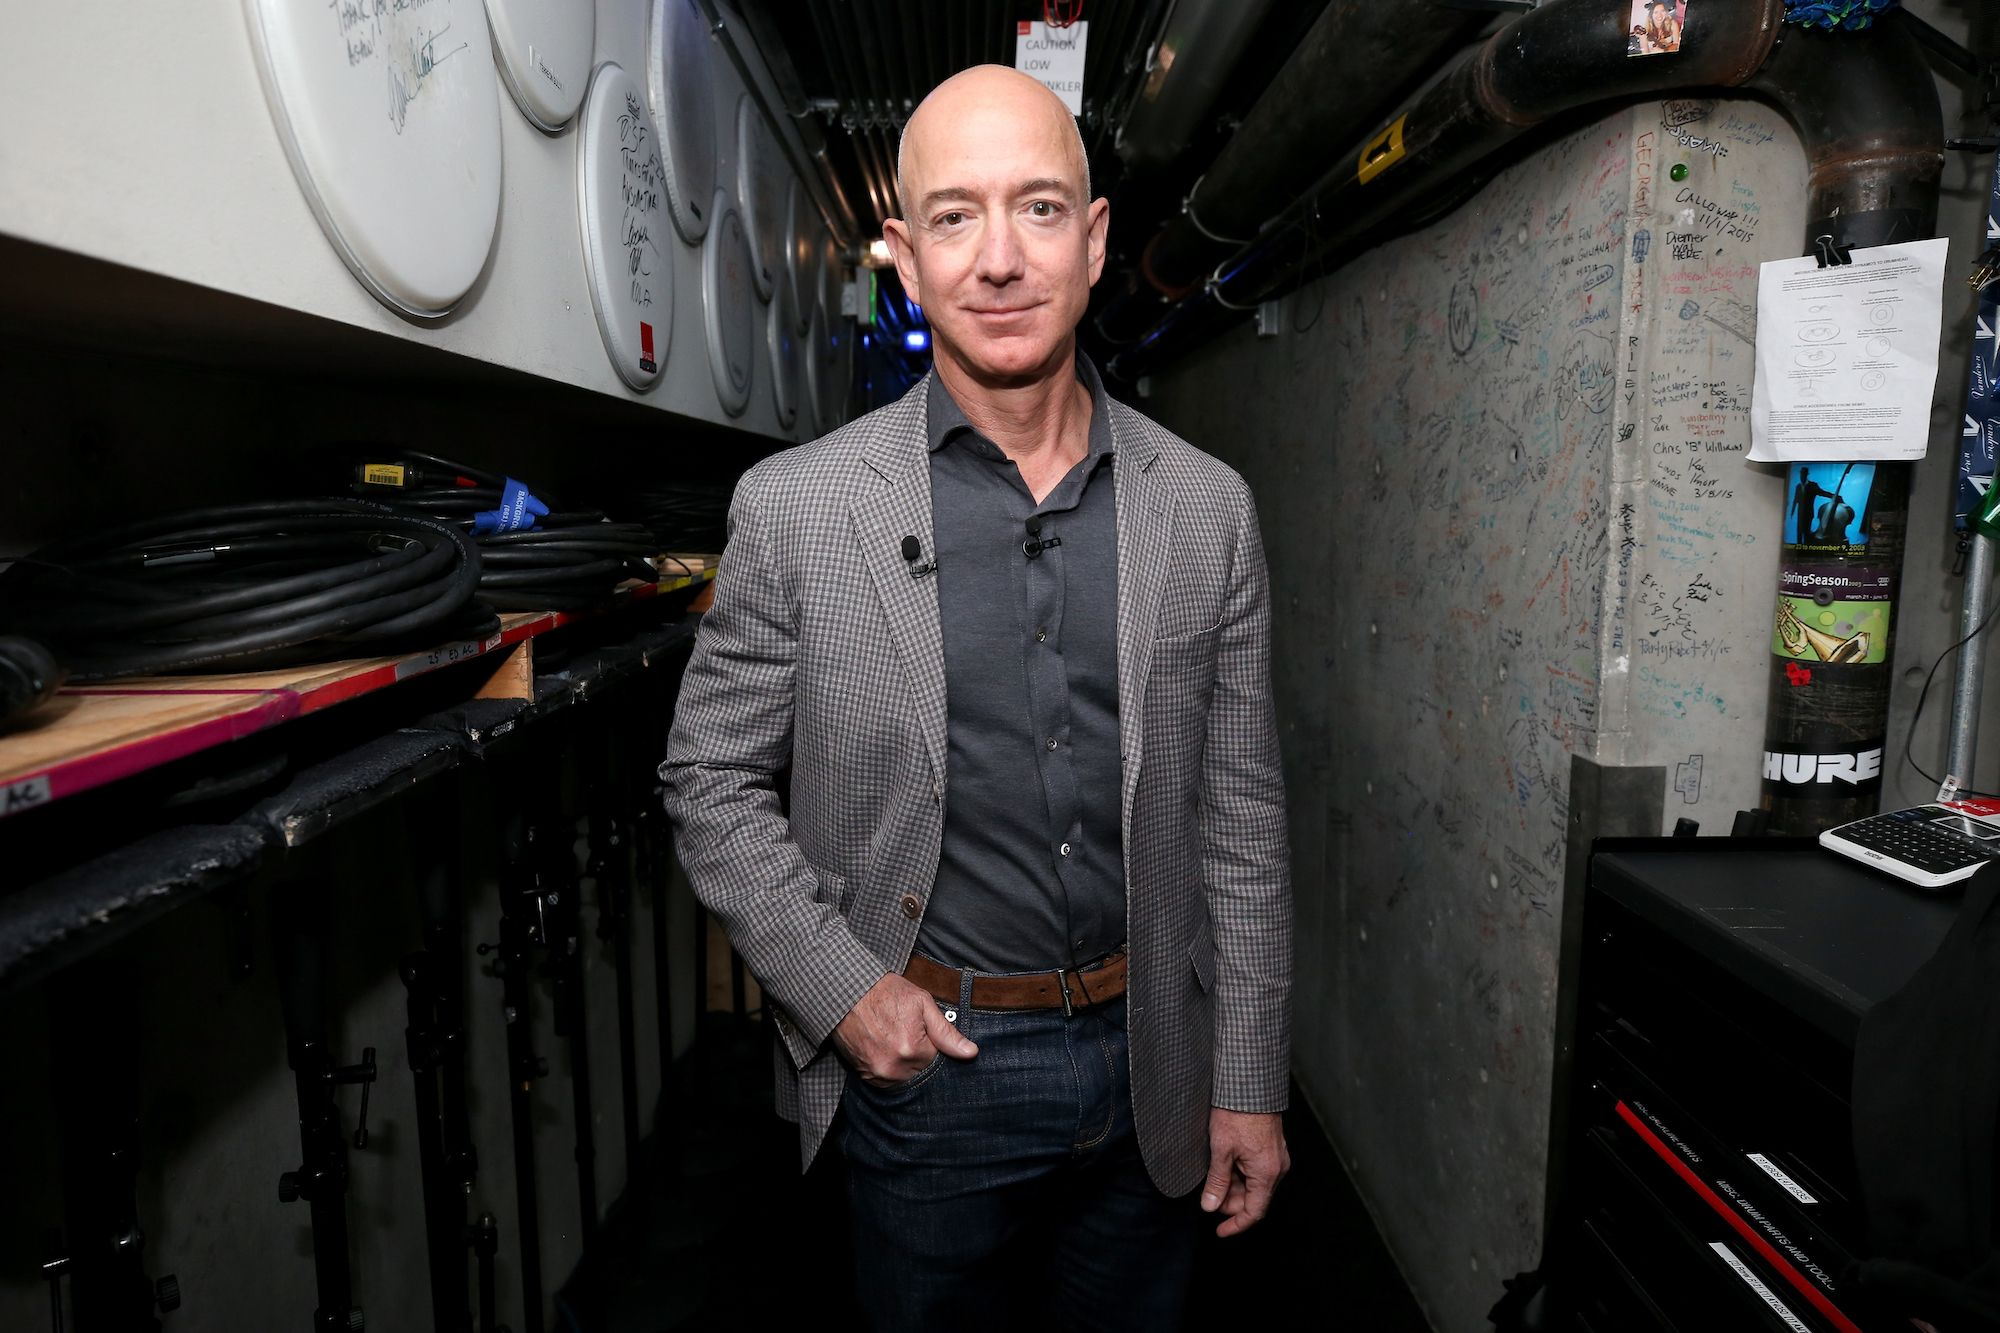 Jeff Bezos Adds US$13 Billion To His Fortune In One Day